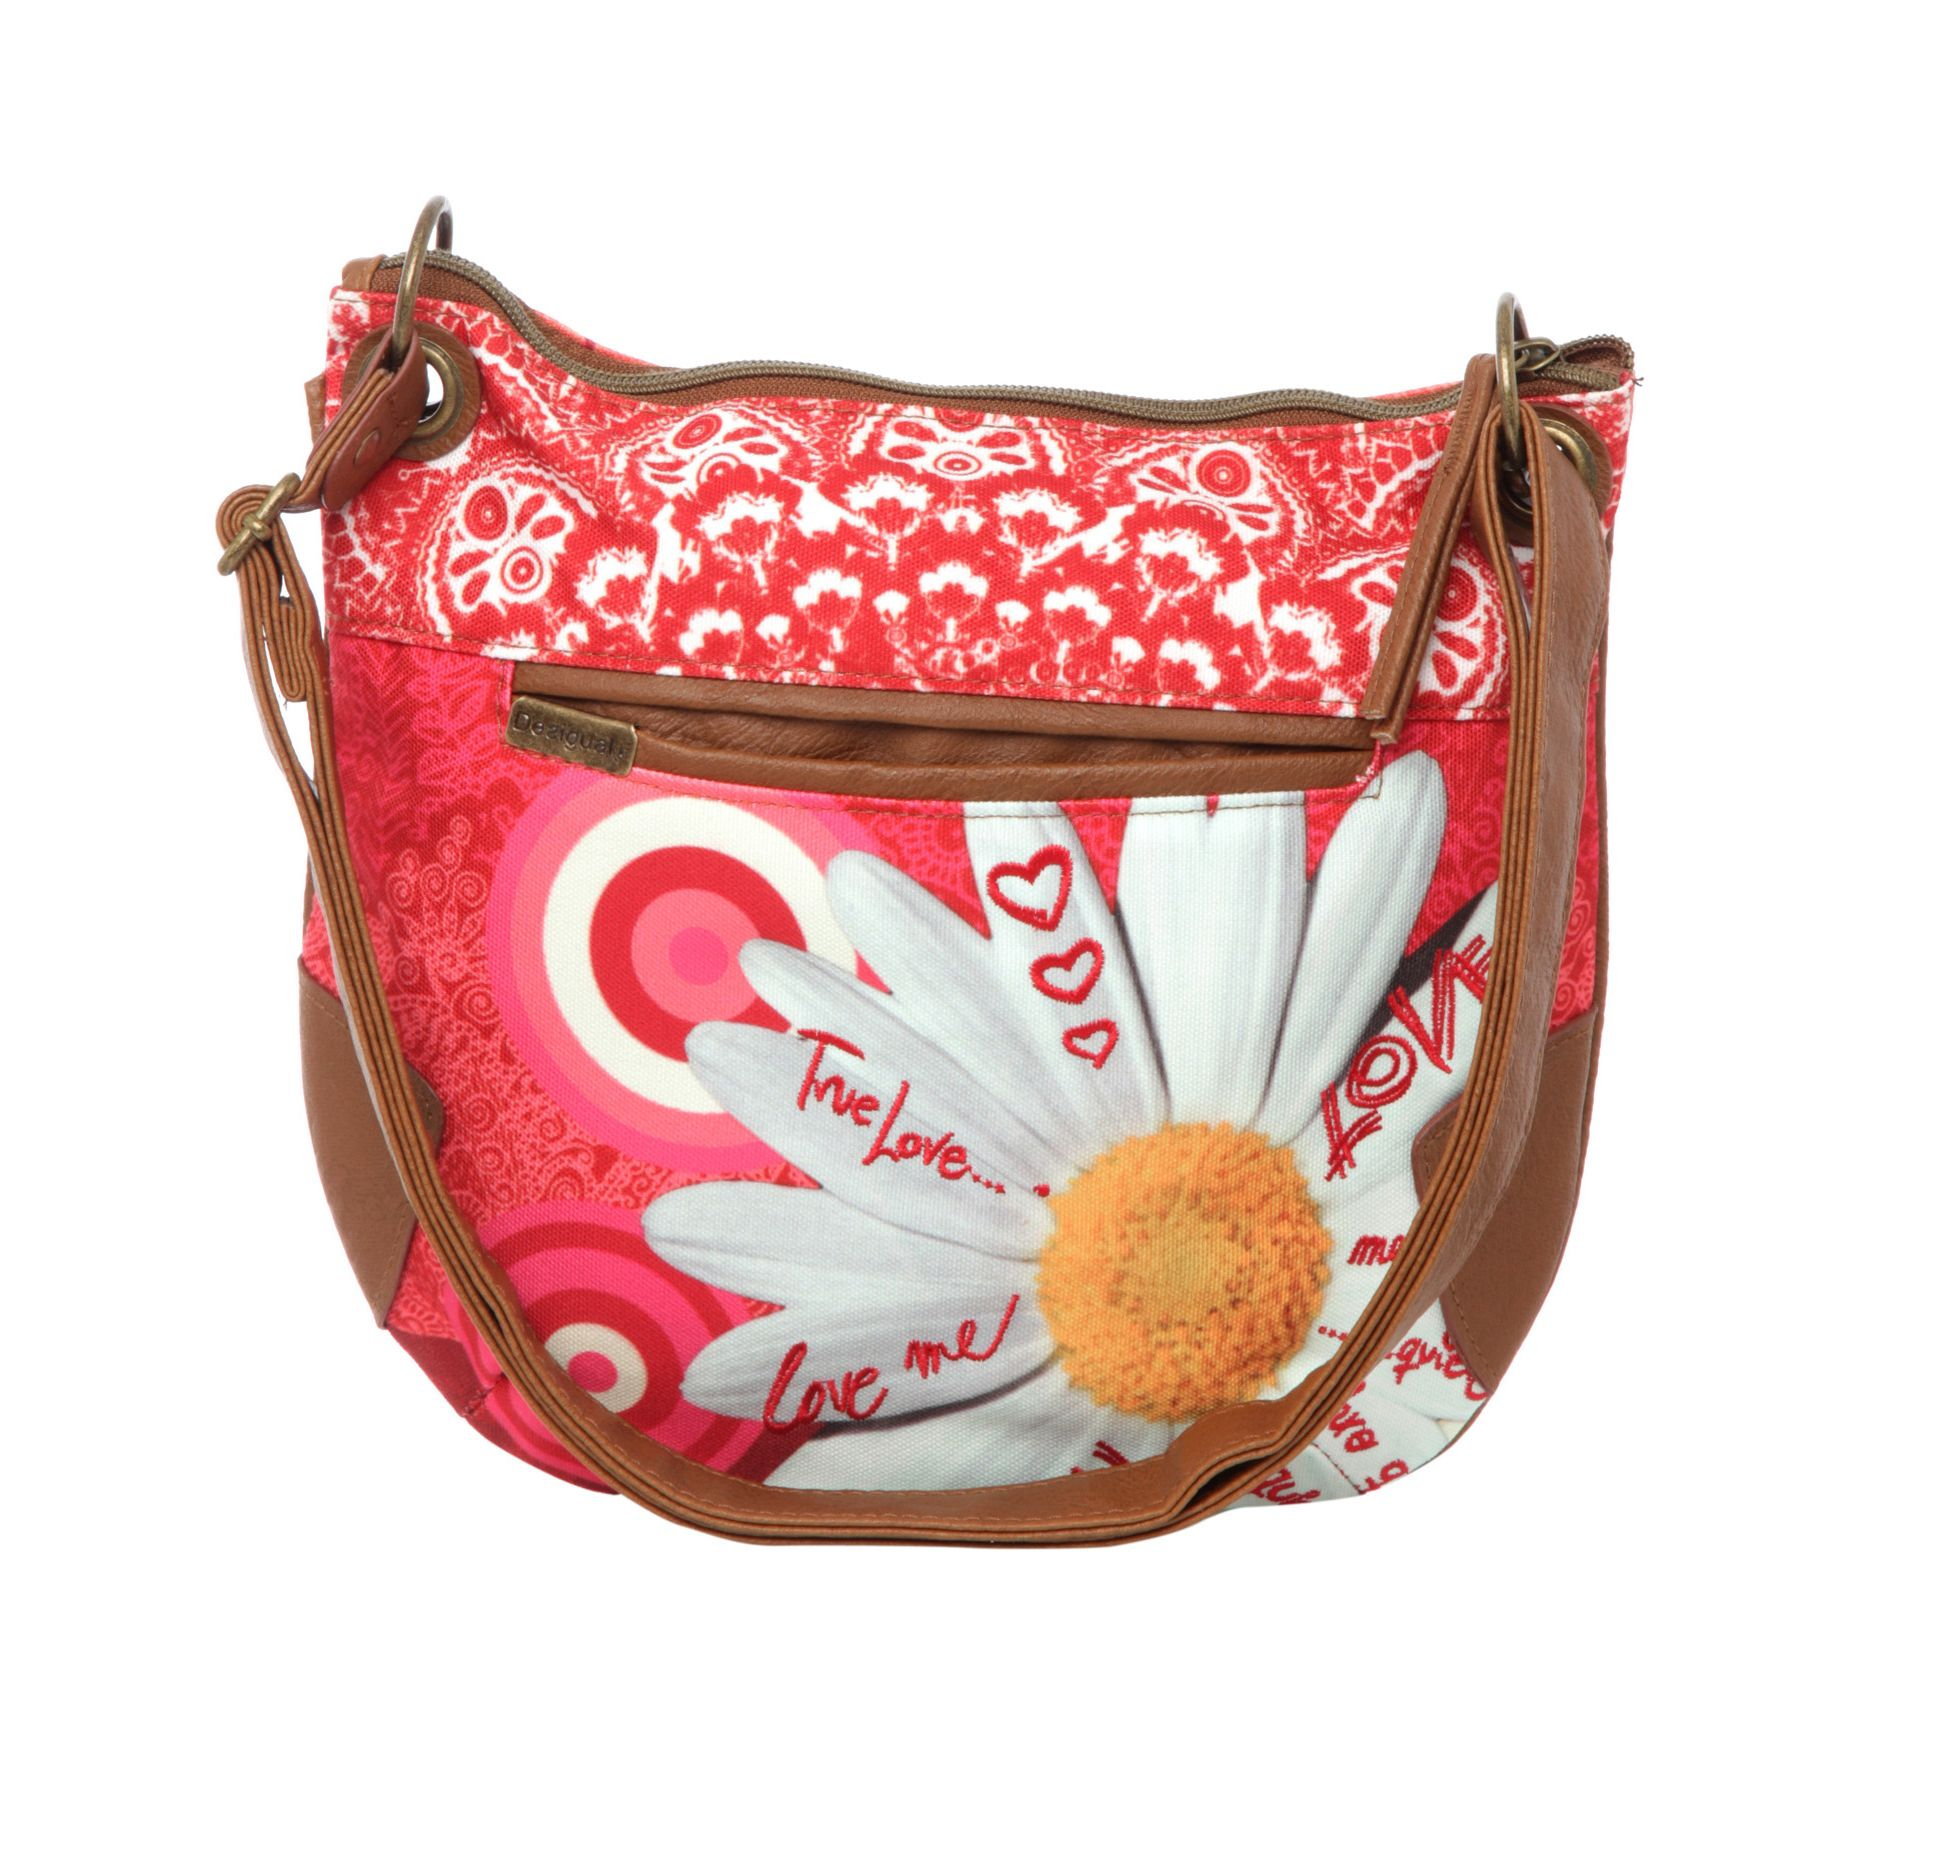 Broklyn tropicana bag